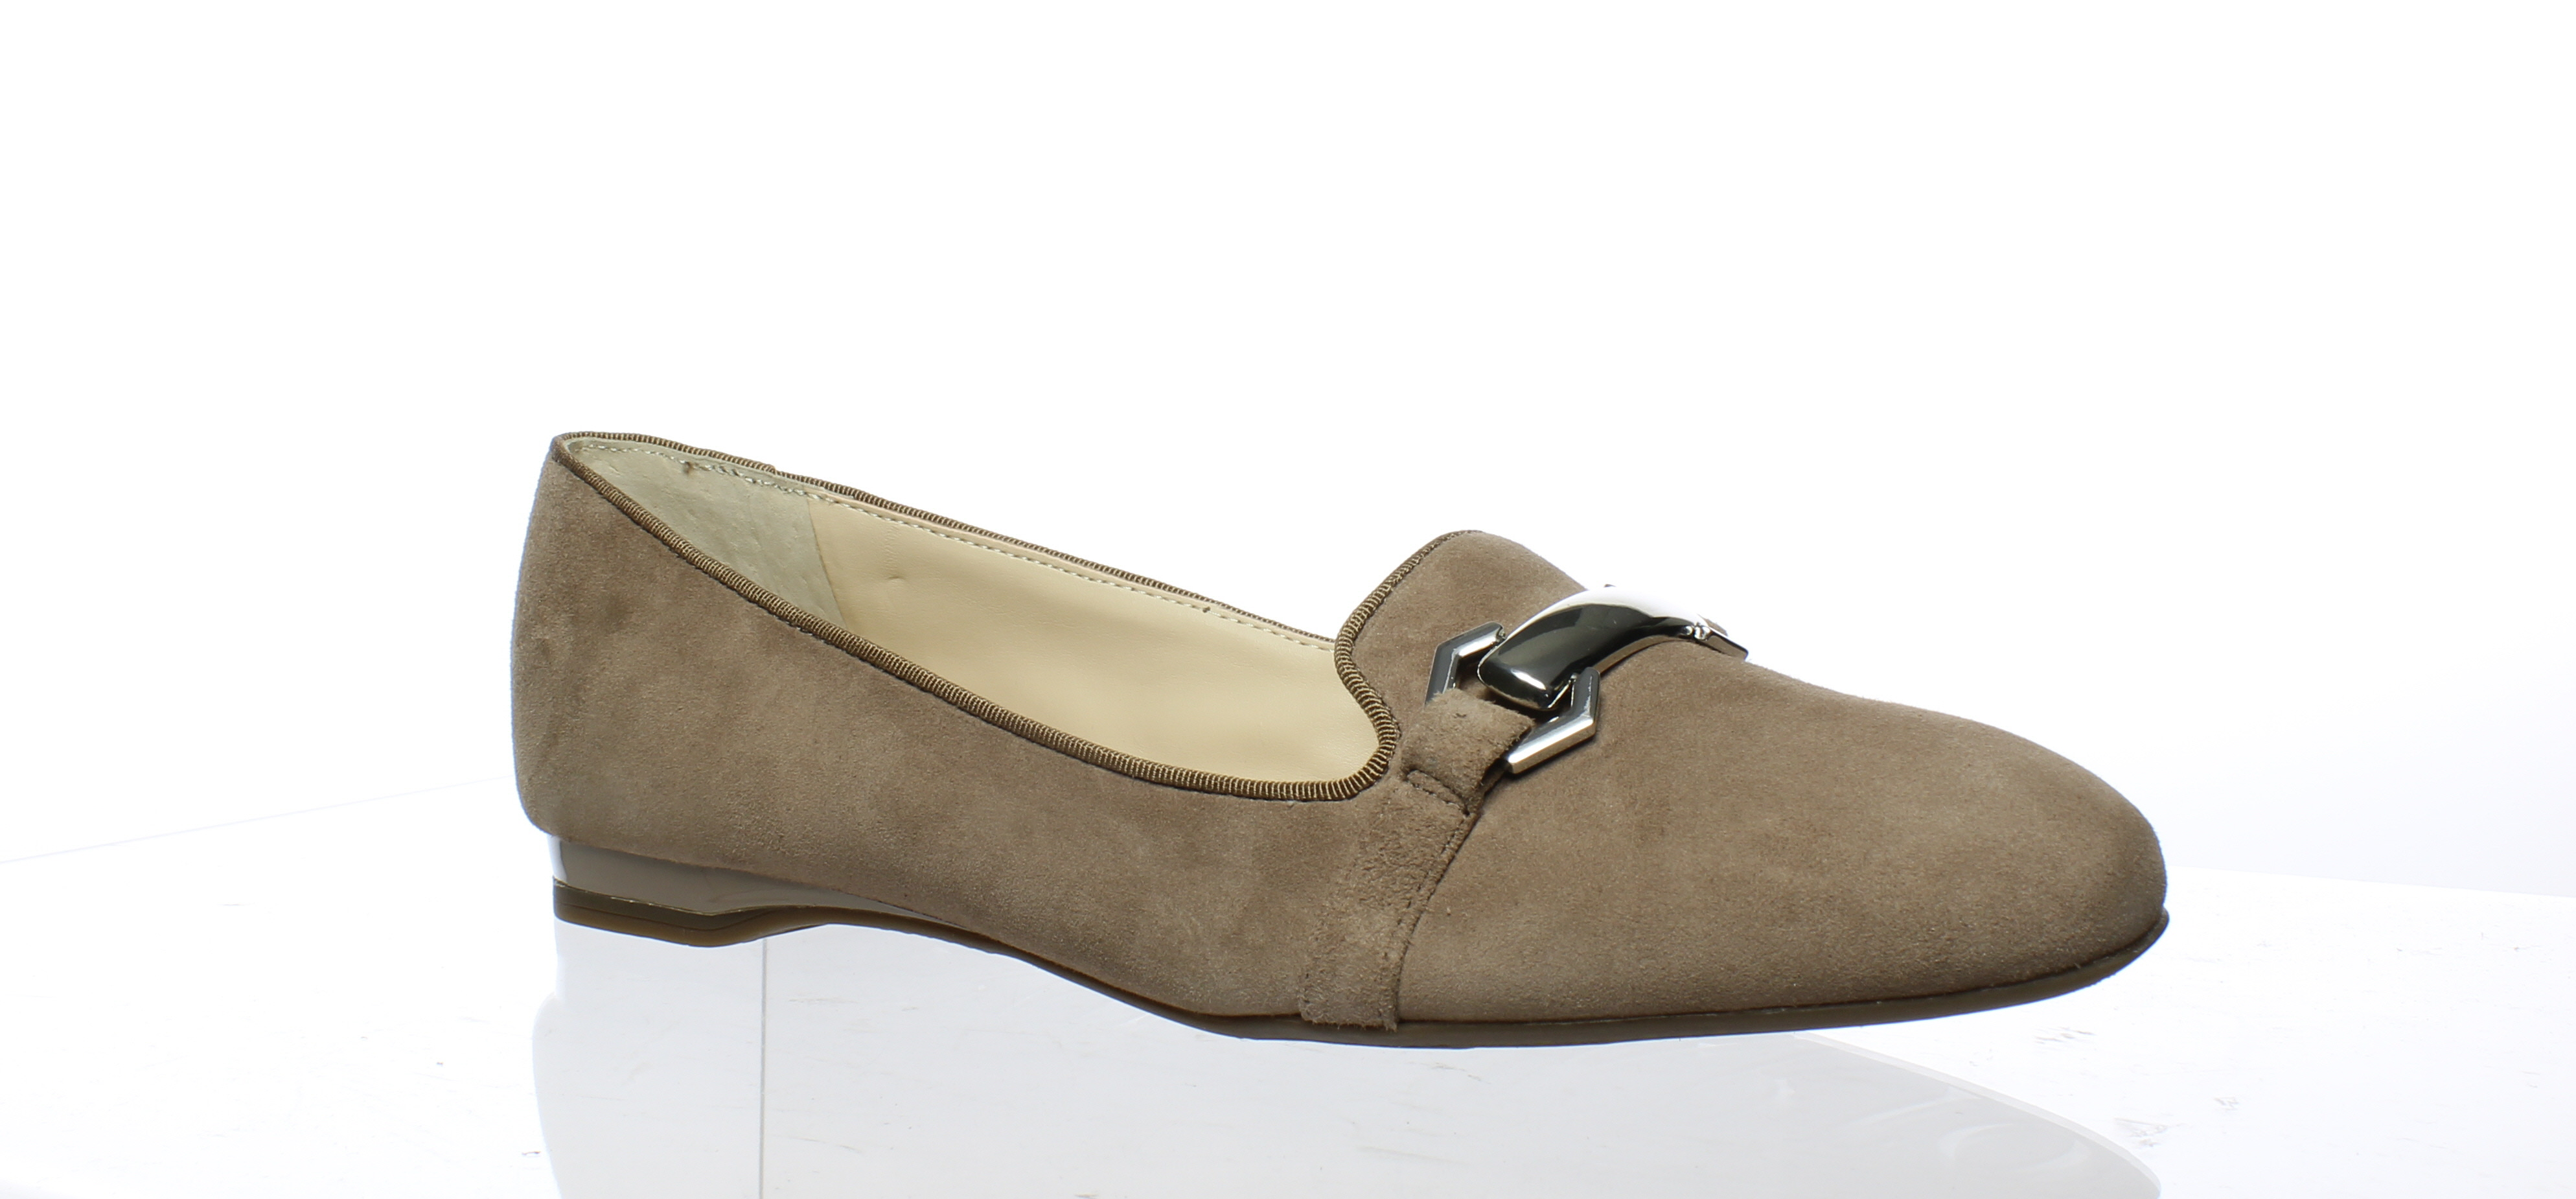 bddcaf1397d Franco Sarto Womens Gerry6 Brown Loafers Size 7.5 93638628609